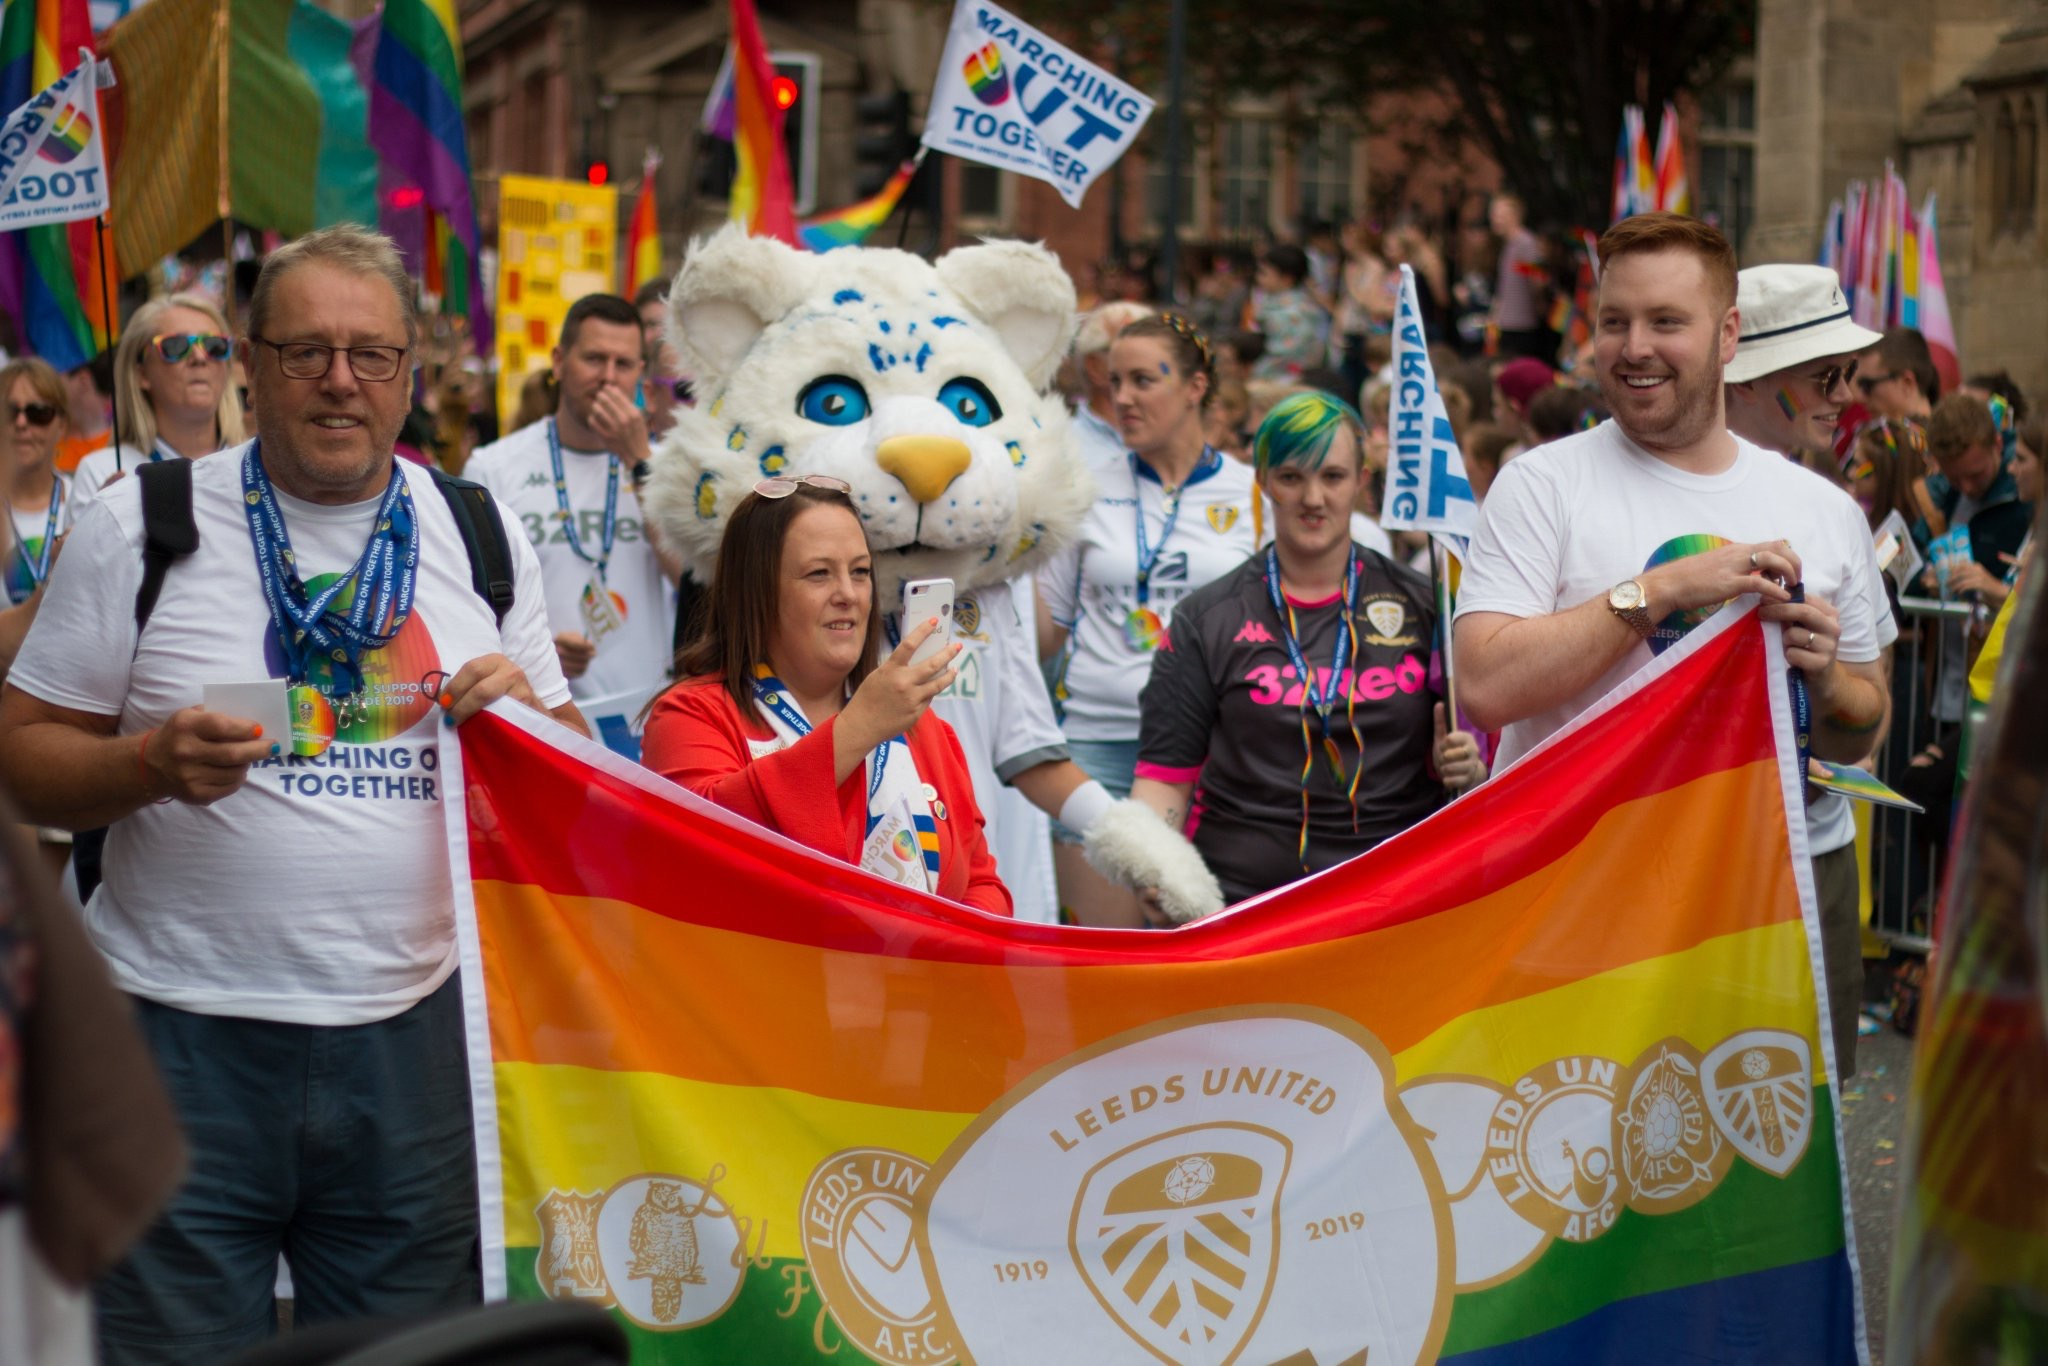 Colour photograph showing a crowd of people marching in the city of Leeds.  At the front several people are holding a large rainbow Leeds United flag